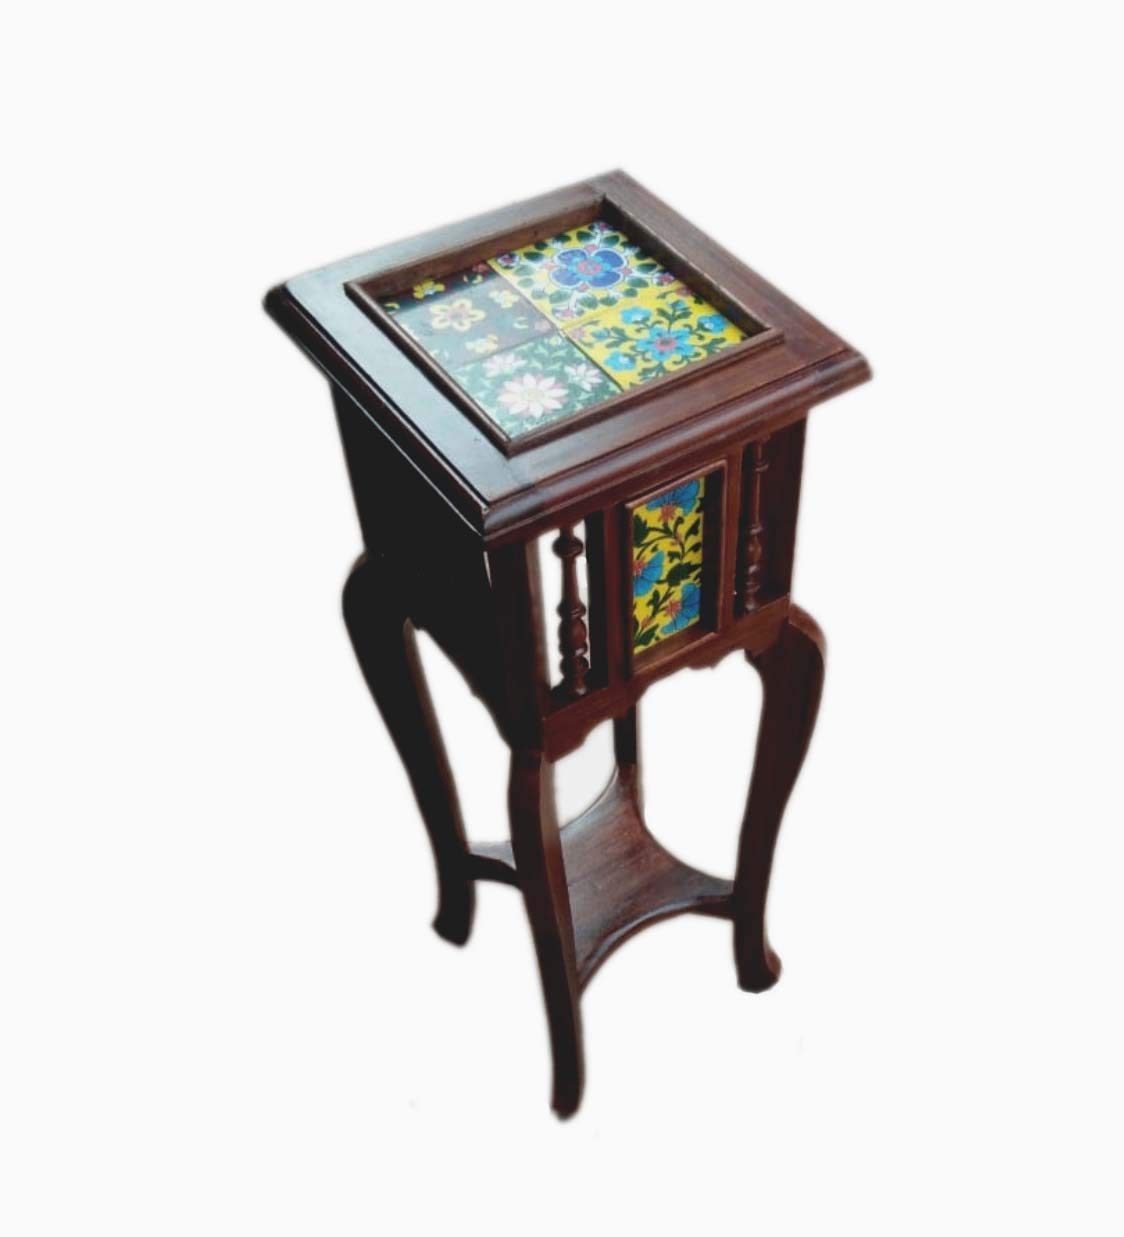 Teak Wood Antique Look Planter Table with Floral Tile Top (30 x 12 x12 inch)